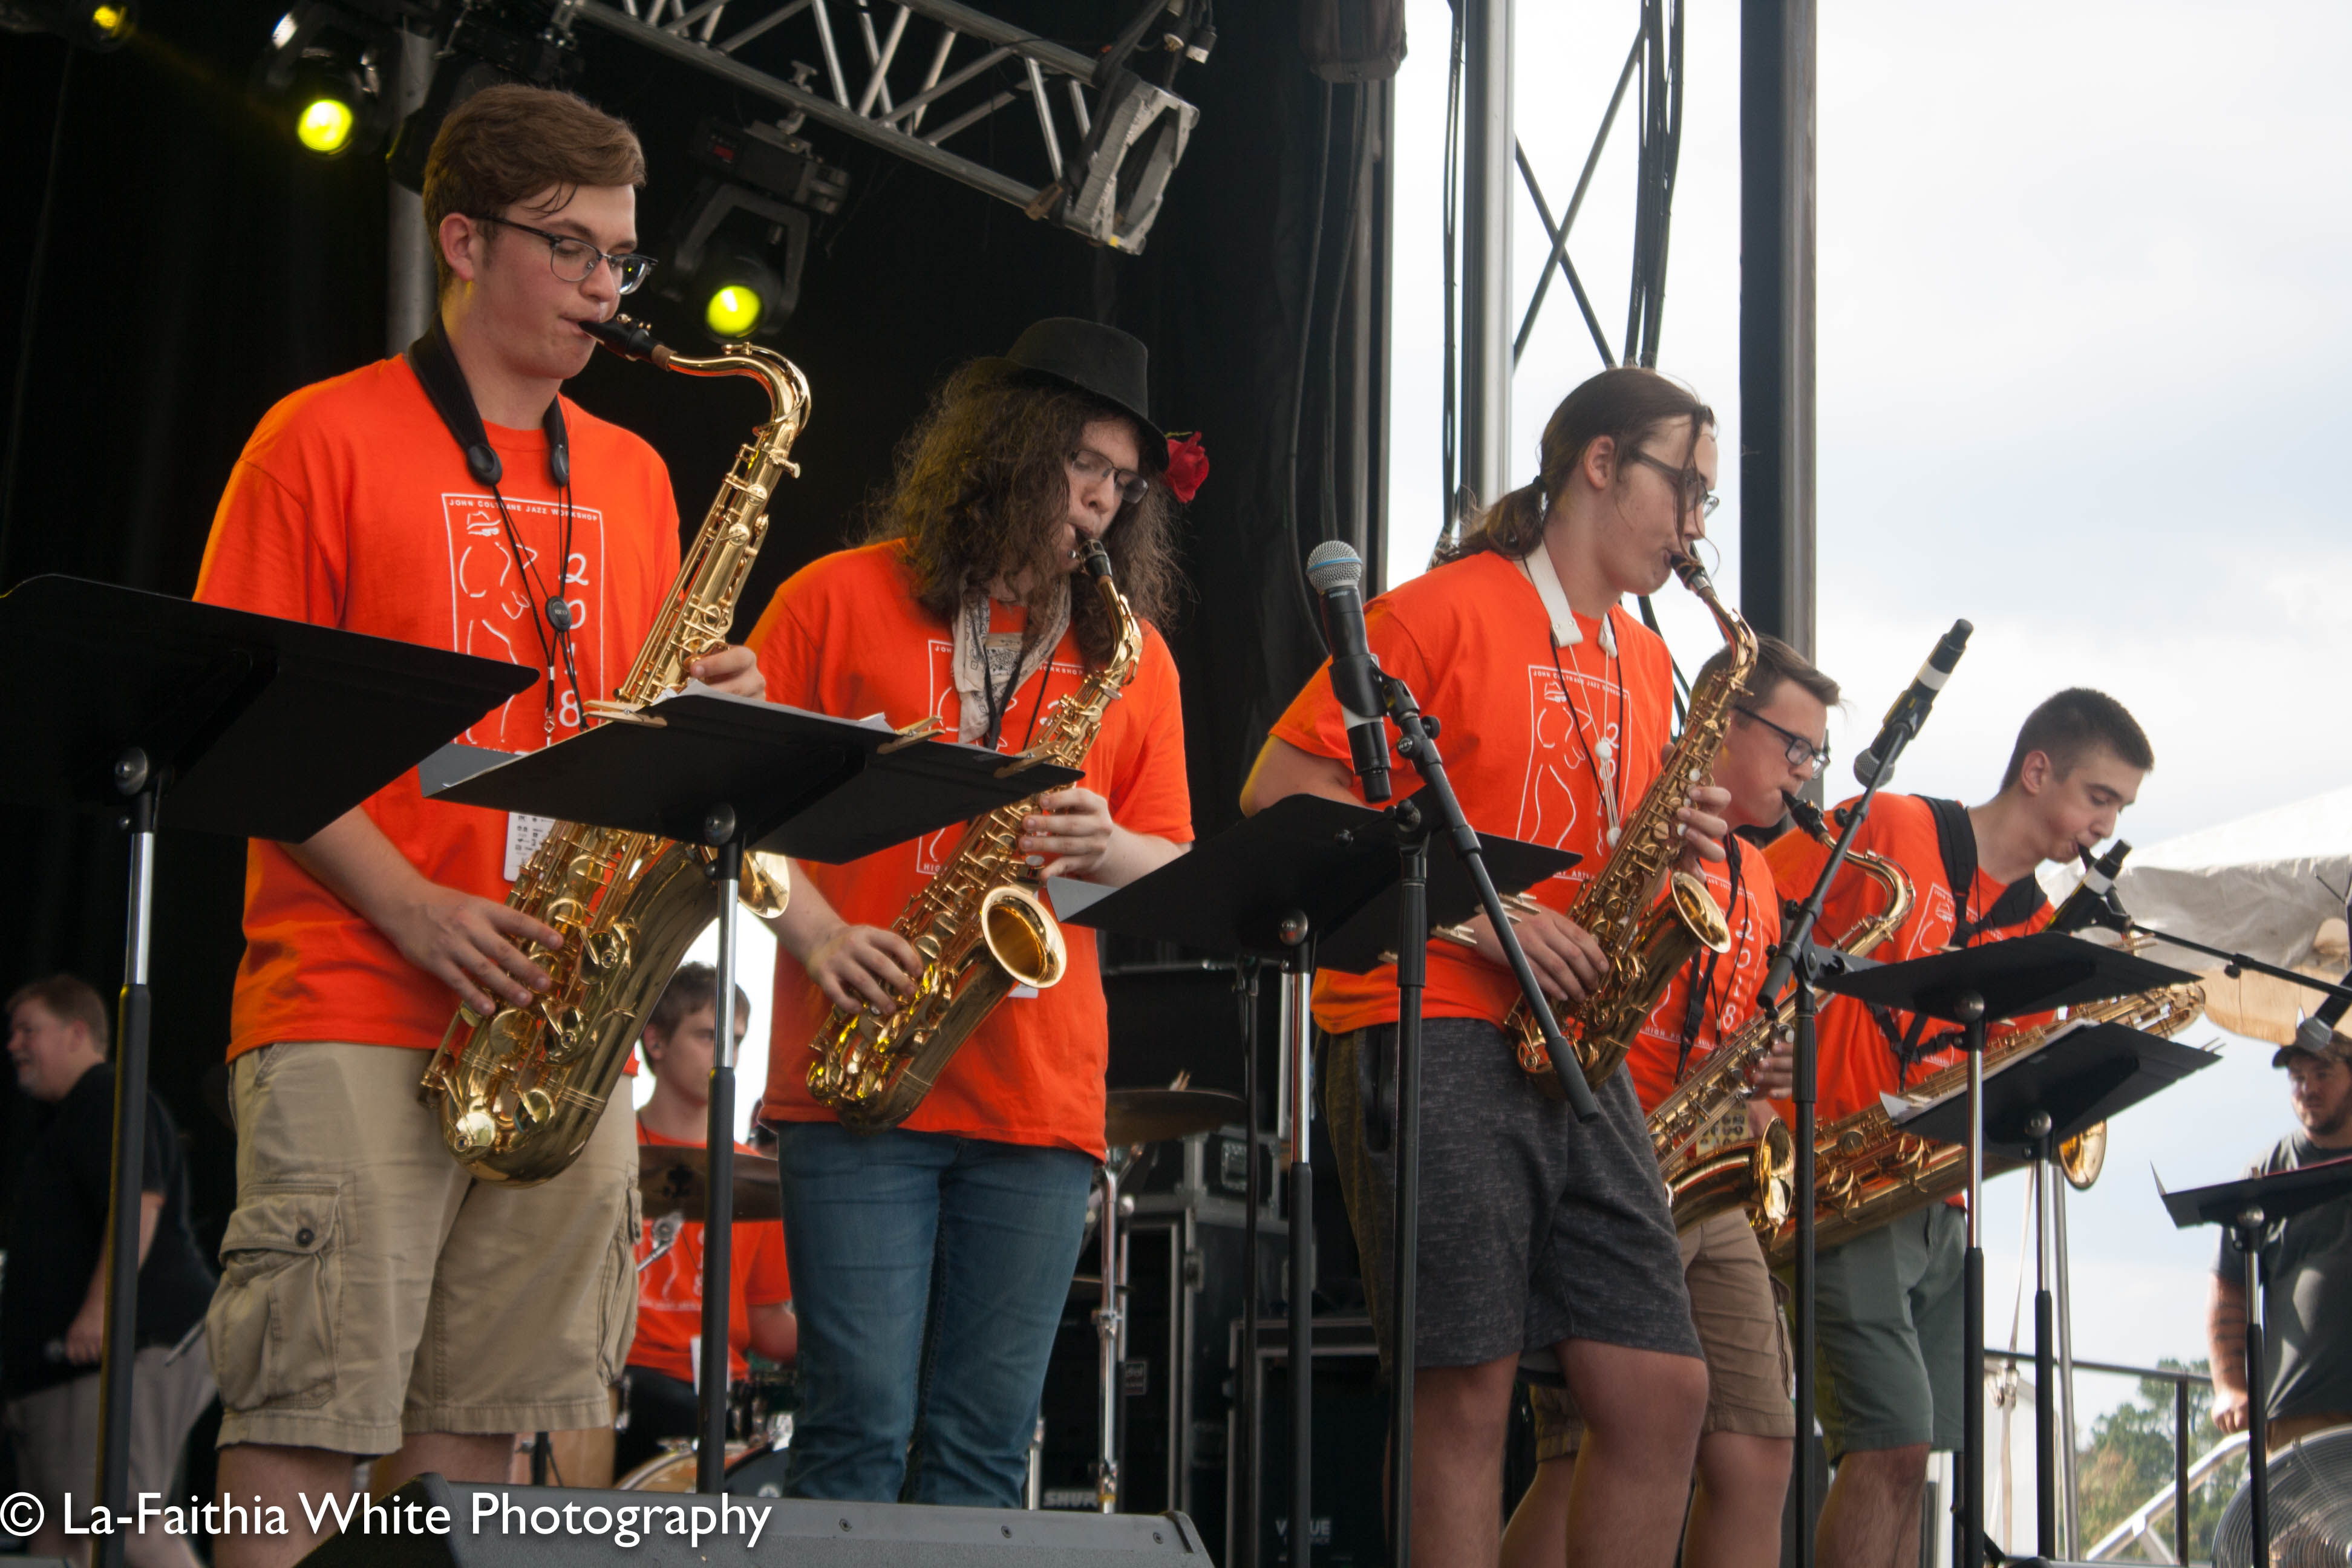 Youth Jazz Workshop At The 8th Annual John Coltrane International Jazz And Blues Festival